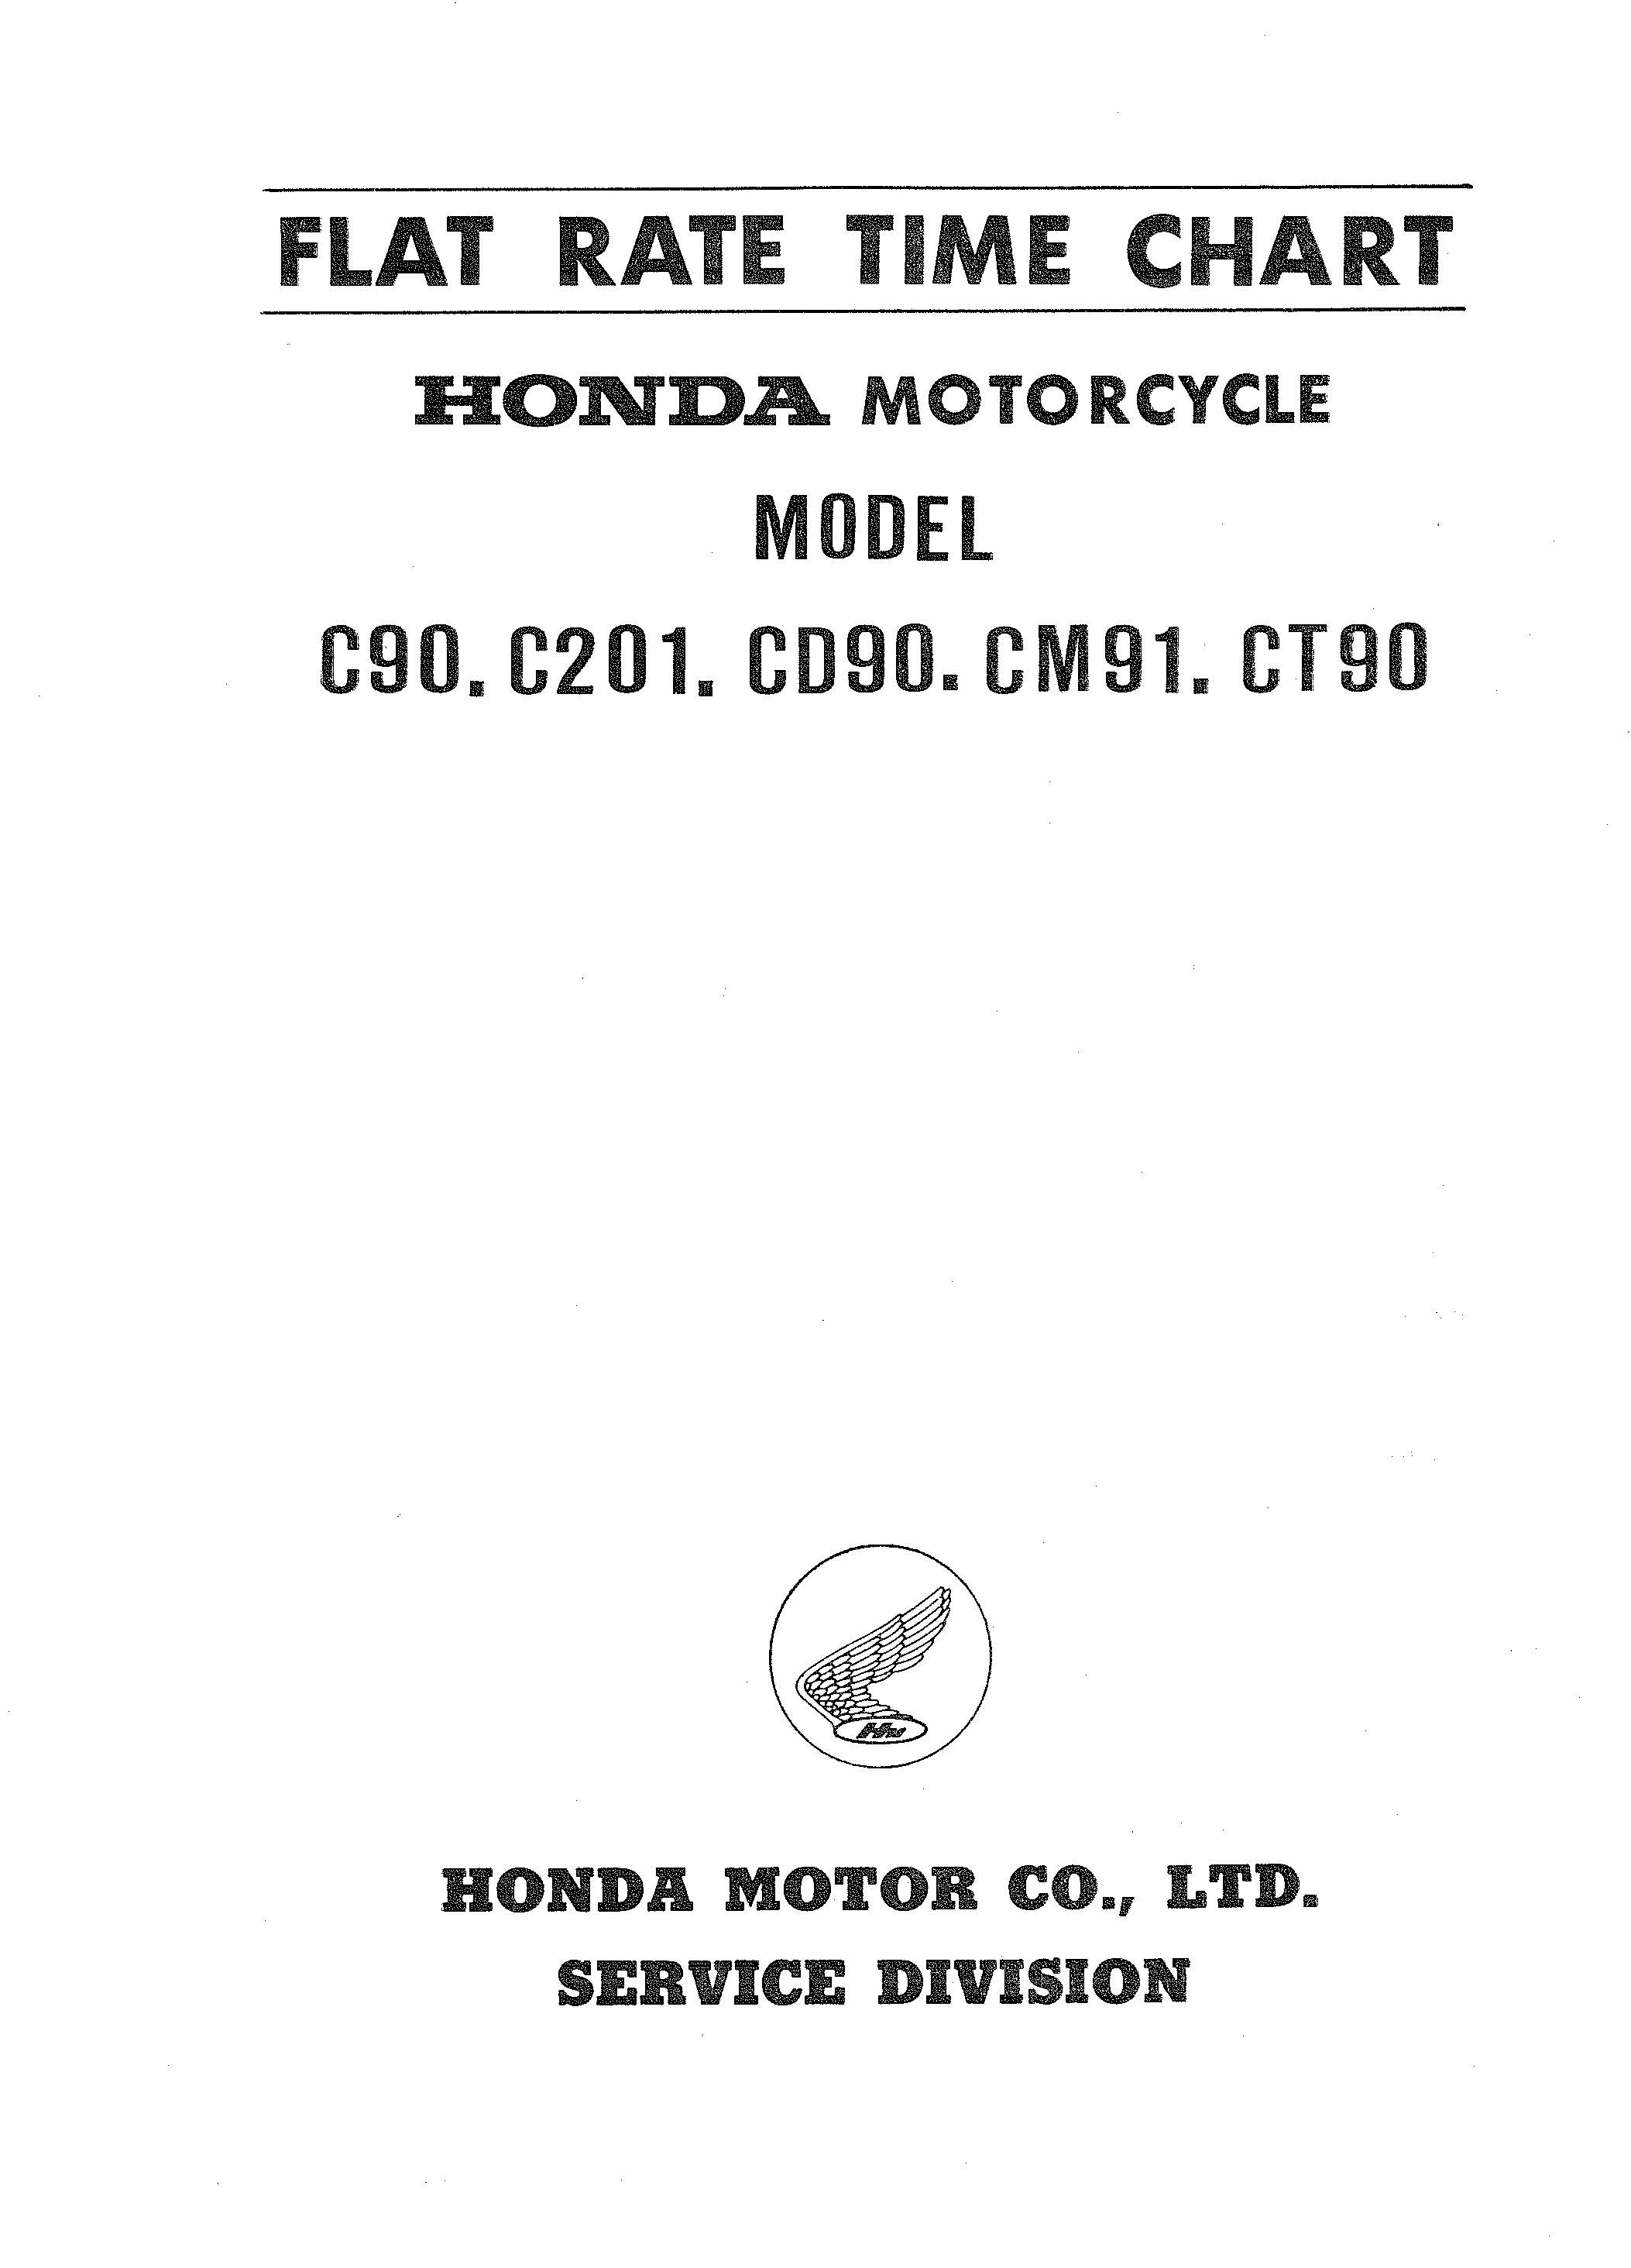 Parts list for Honda C90 (1967)